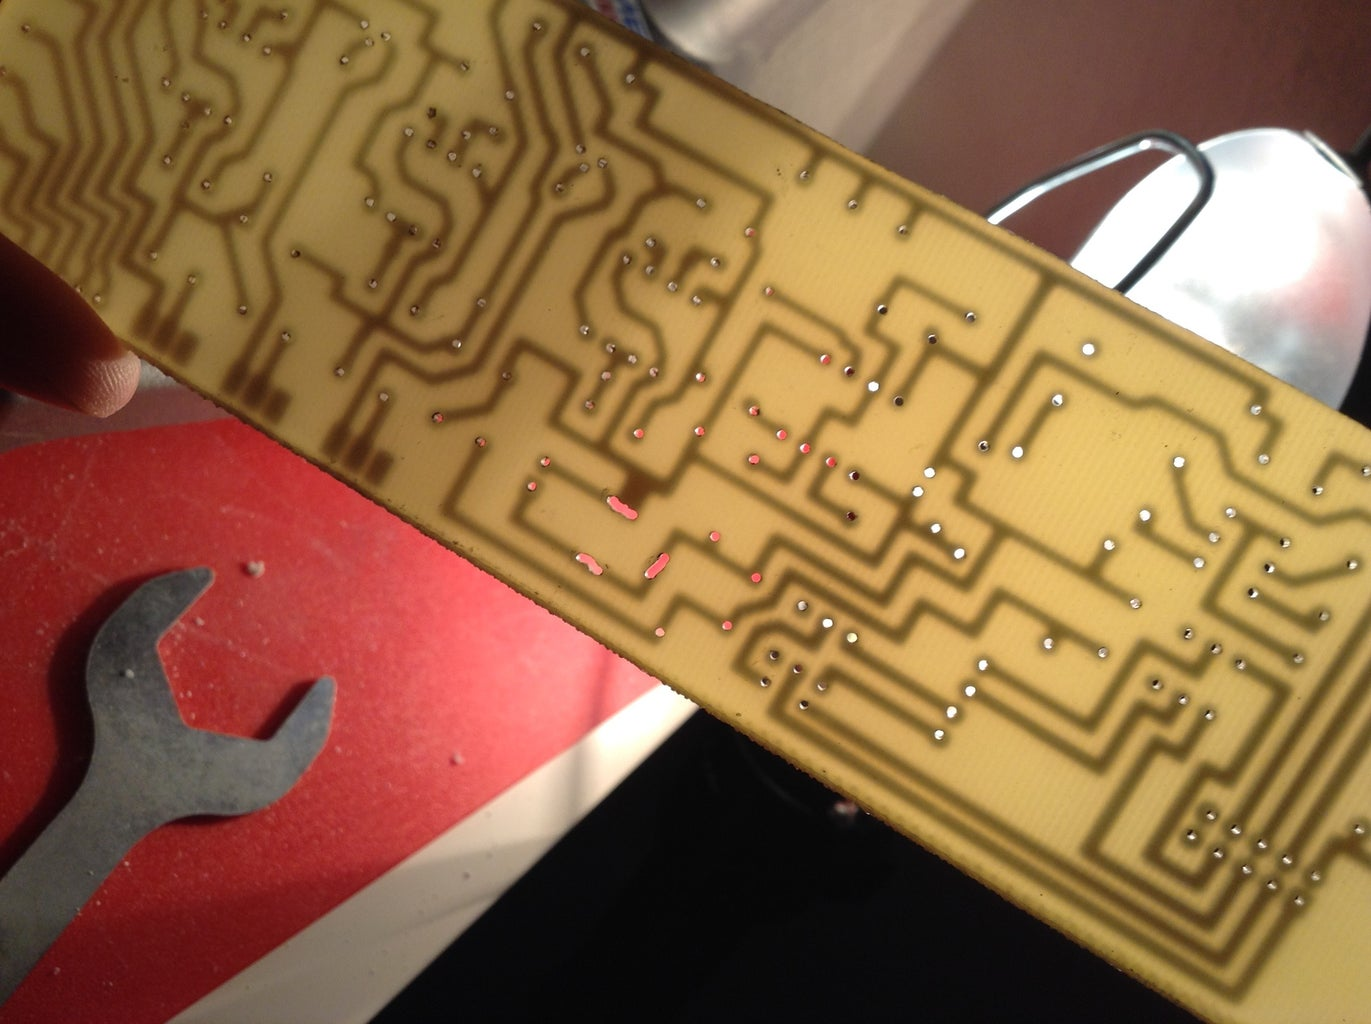 Making the PCB